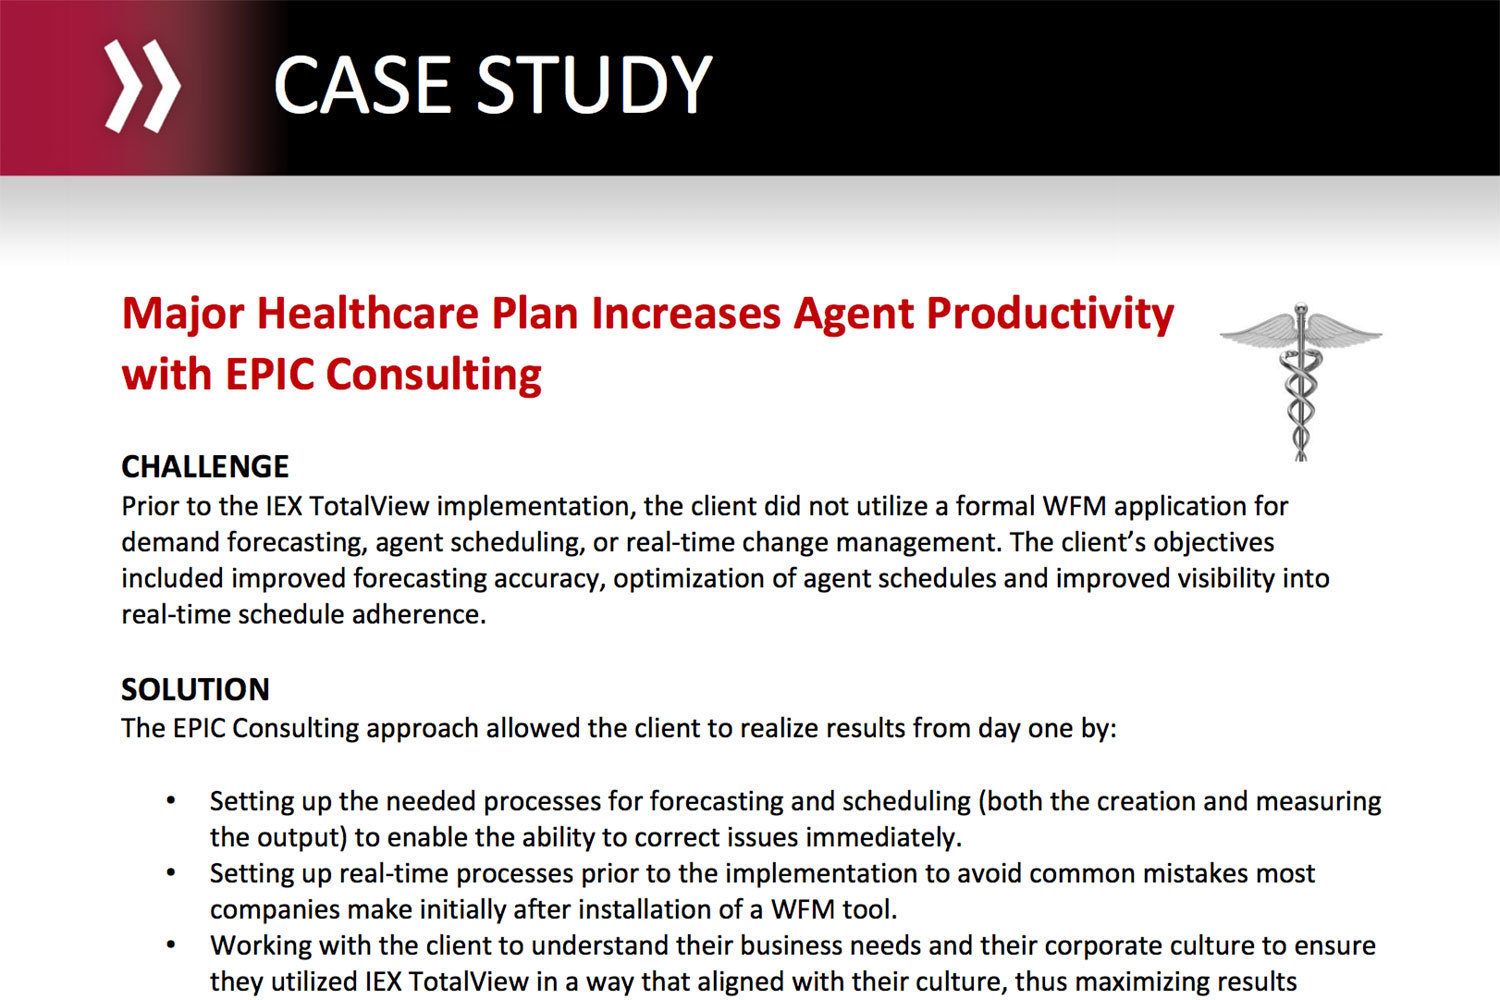 Major Healthcare Plan Increases Agent Productivity with EPIC Consulting